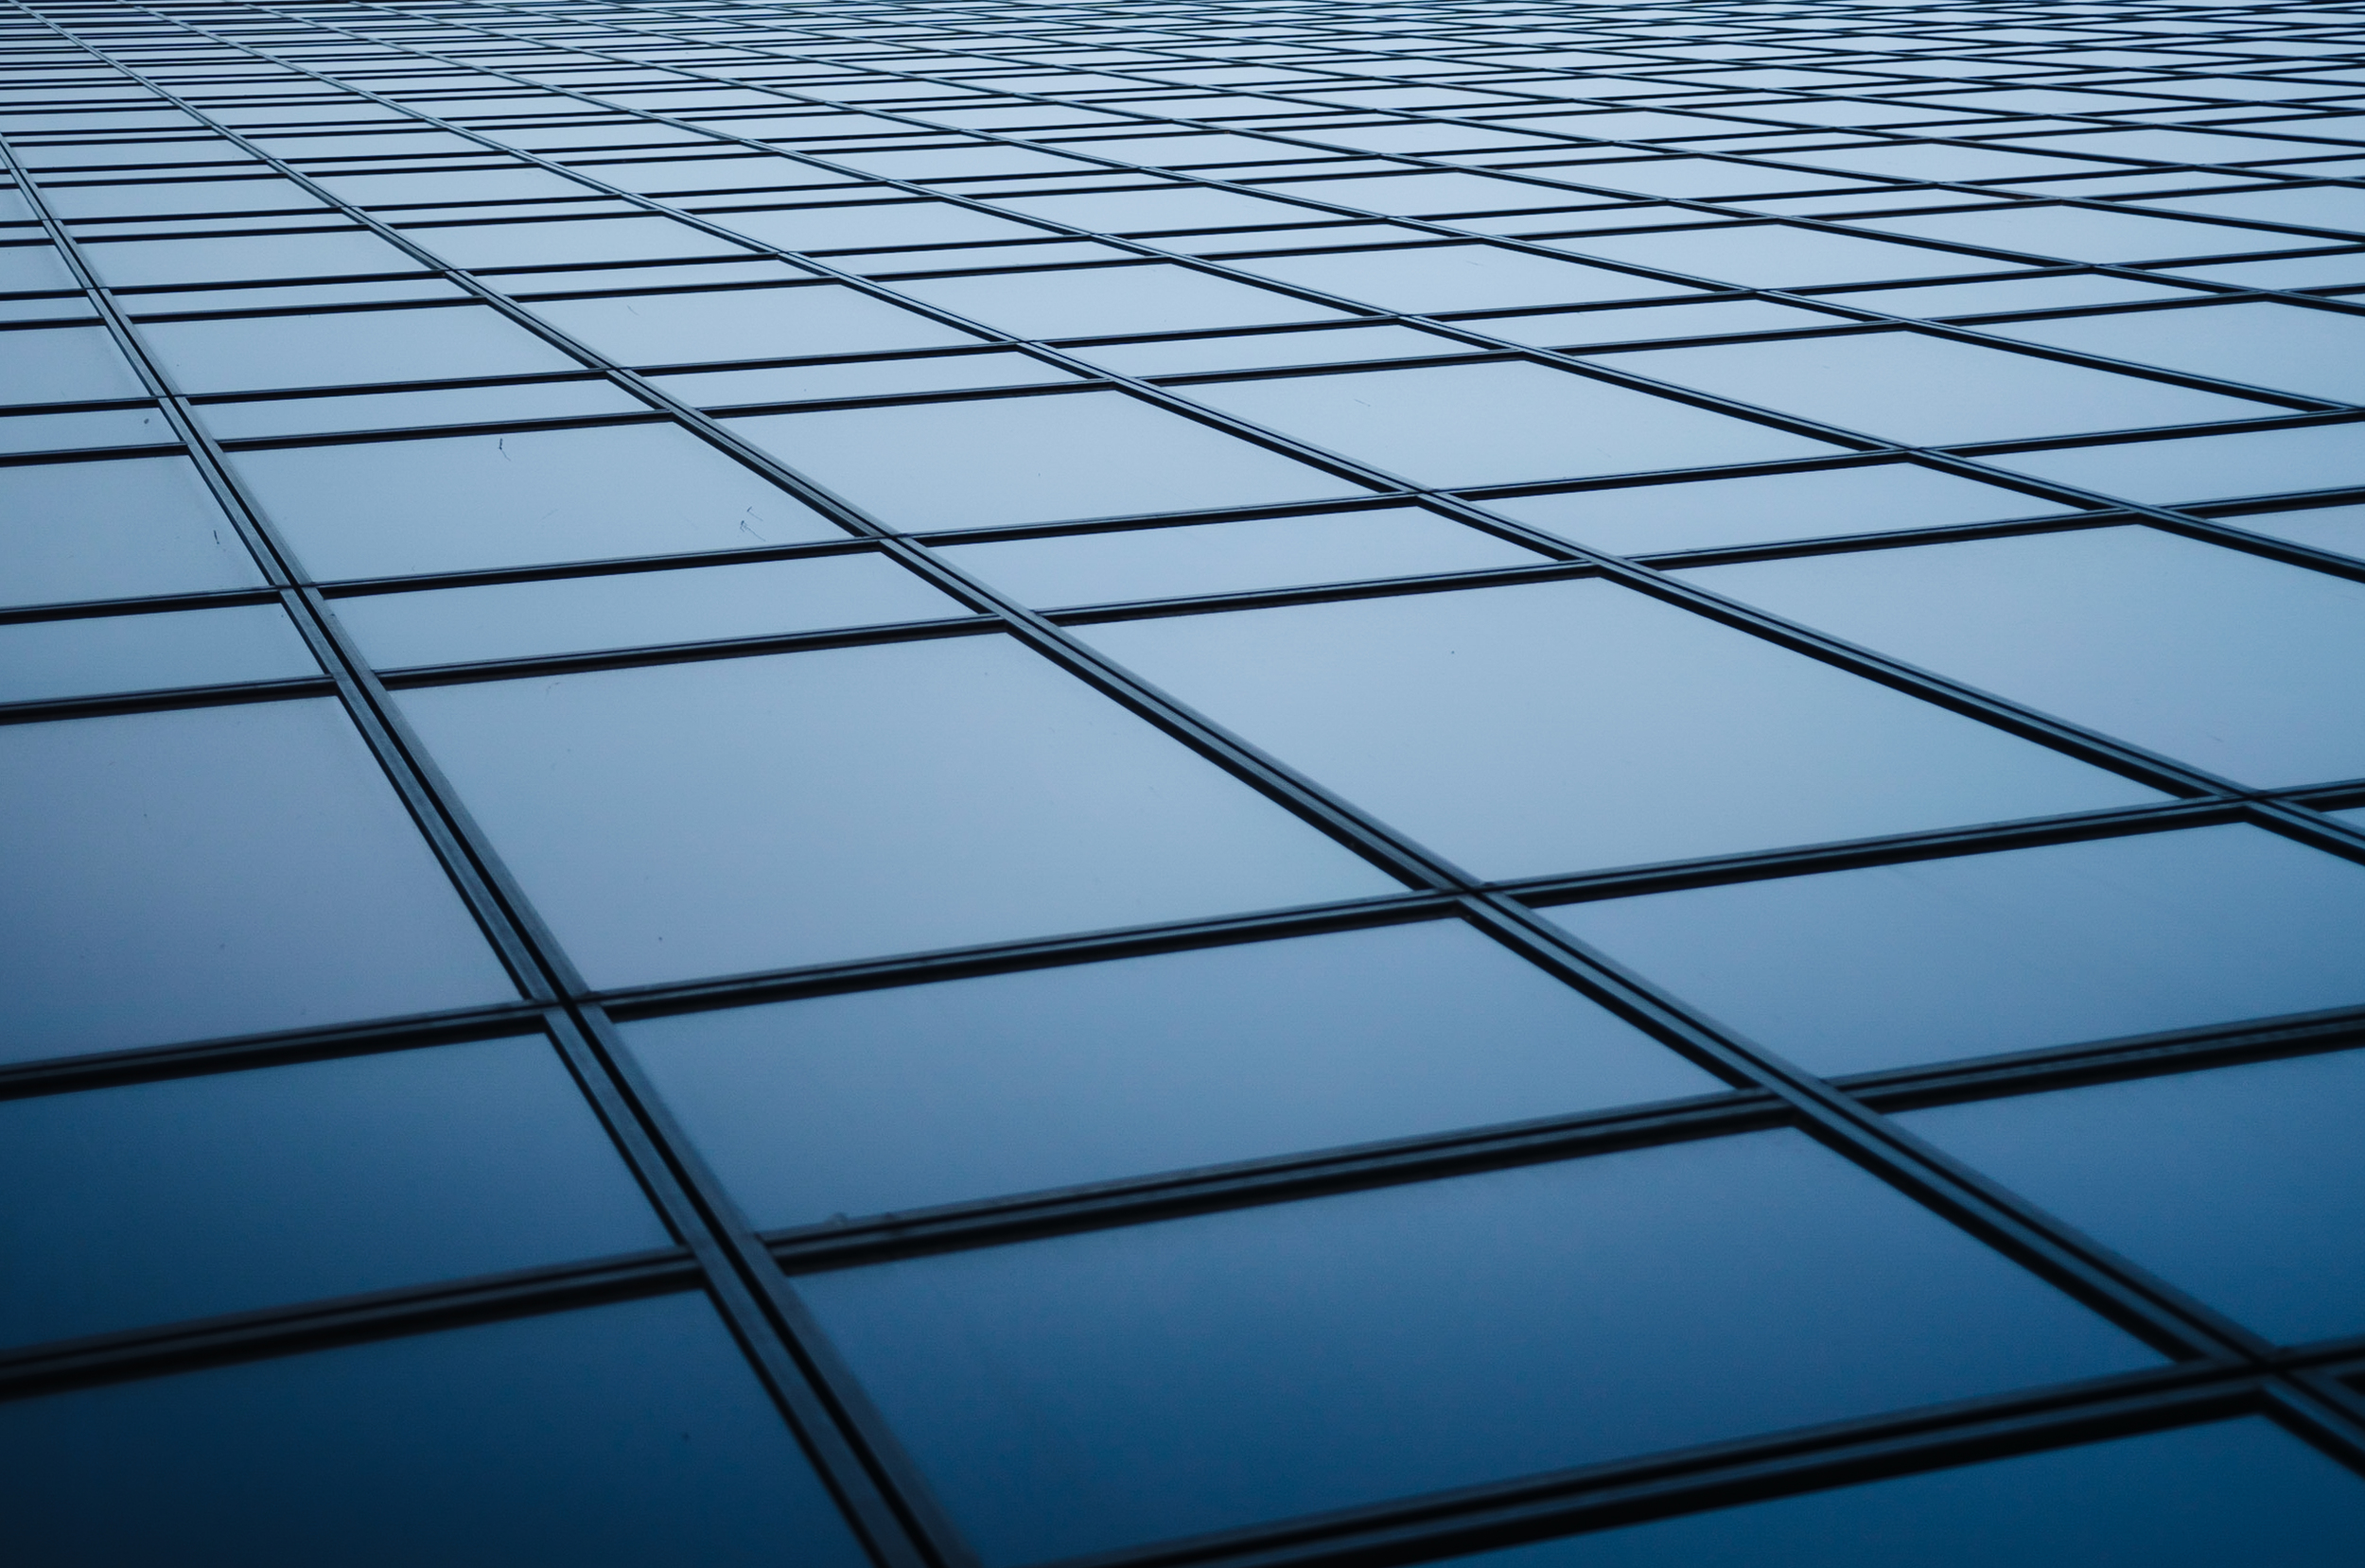 Boundless  - Imagine rain traversing down these perfect tiles of glass.